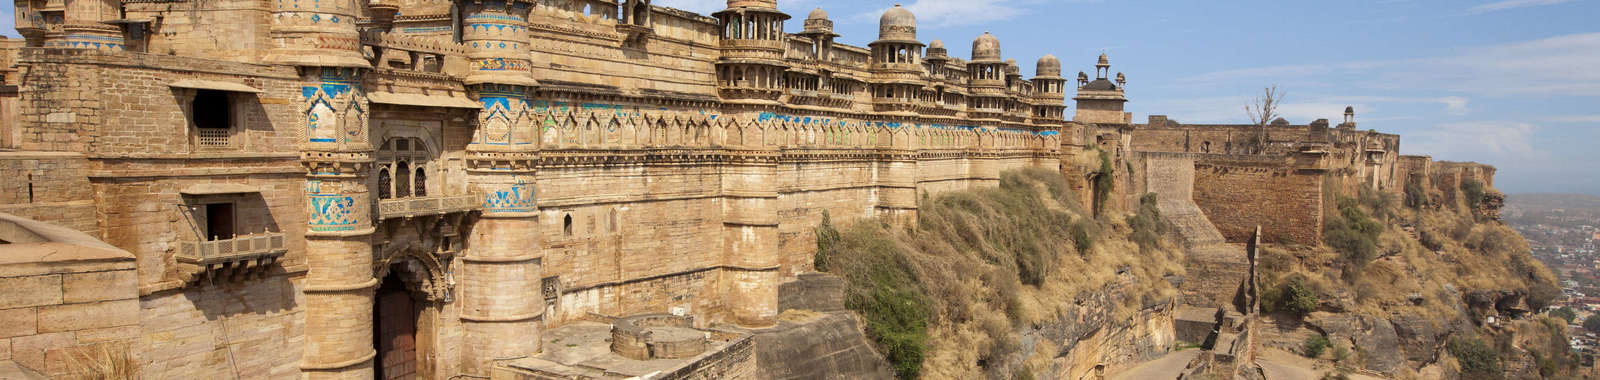 Visit Gwalior Fort on a luxury tailor-made holiday to north India